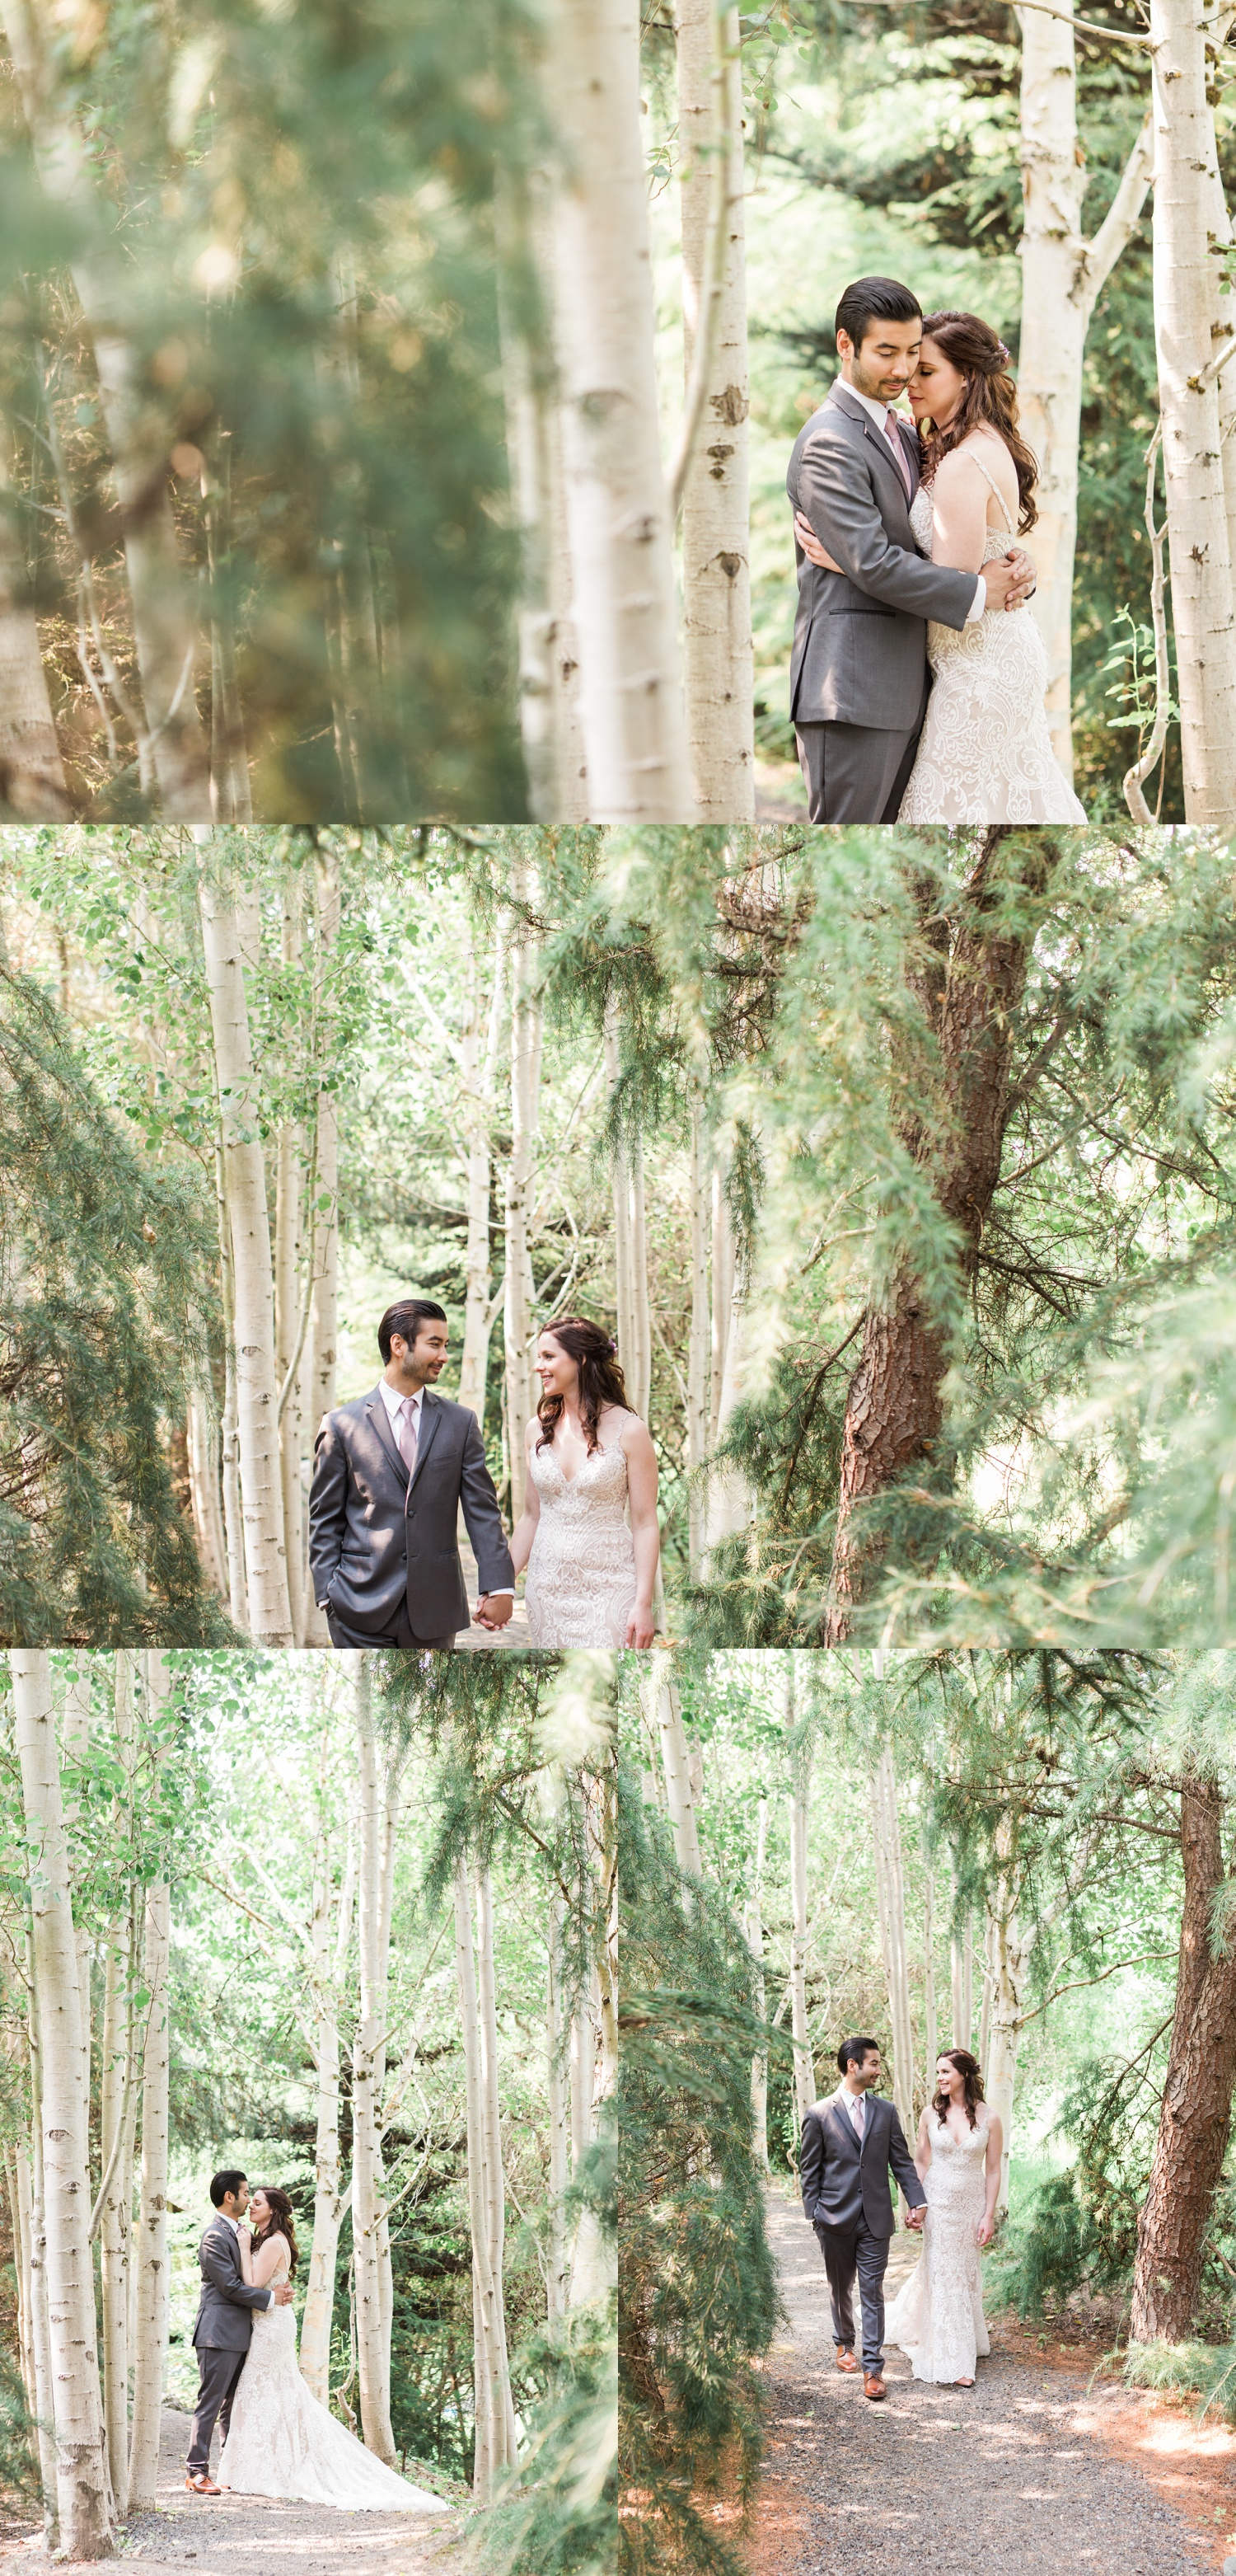 Wedding in the forest at Woodland Meadow Farms in Snohomish. Bride & groom walking through woods.